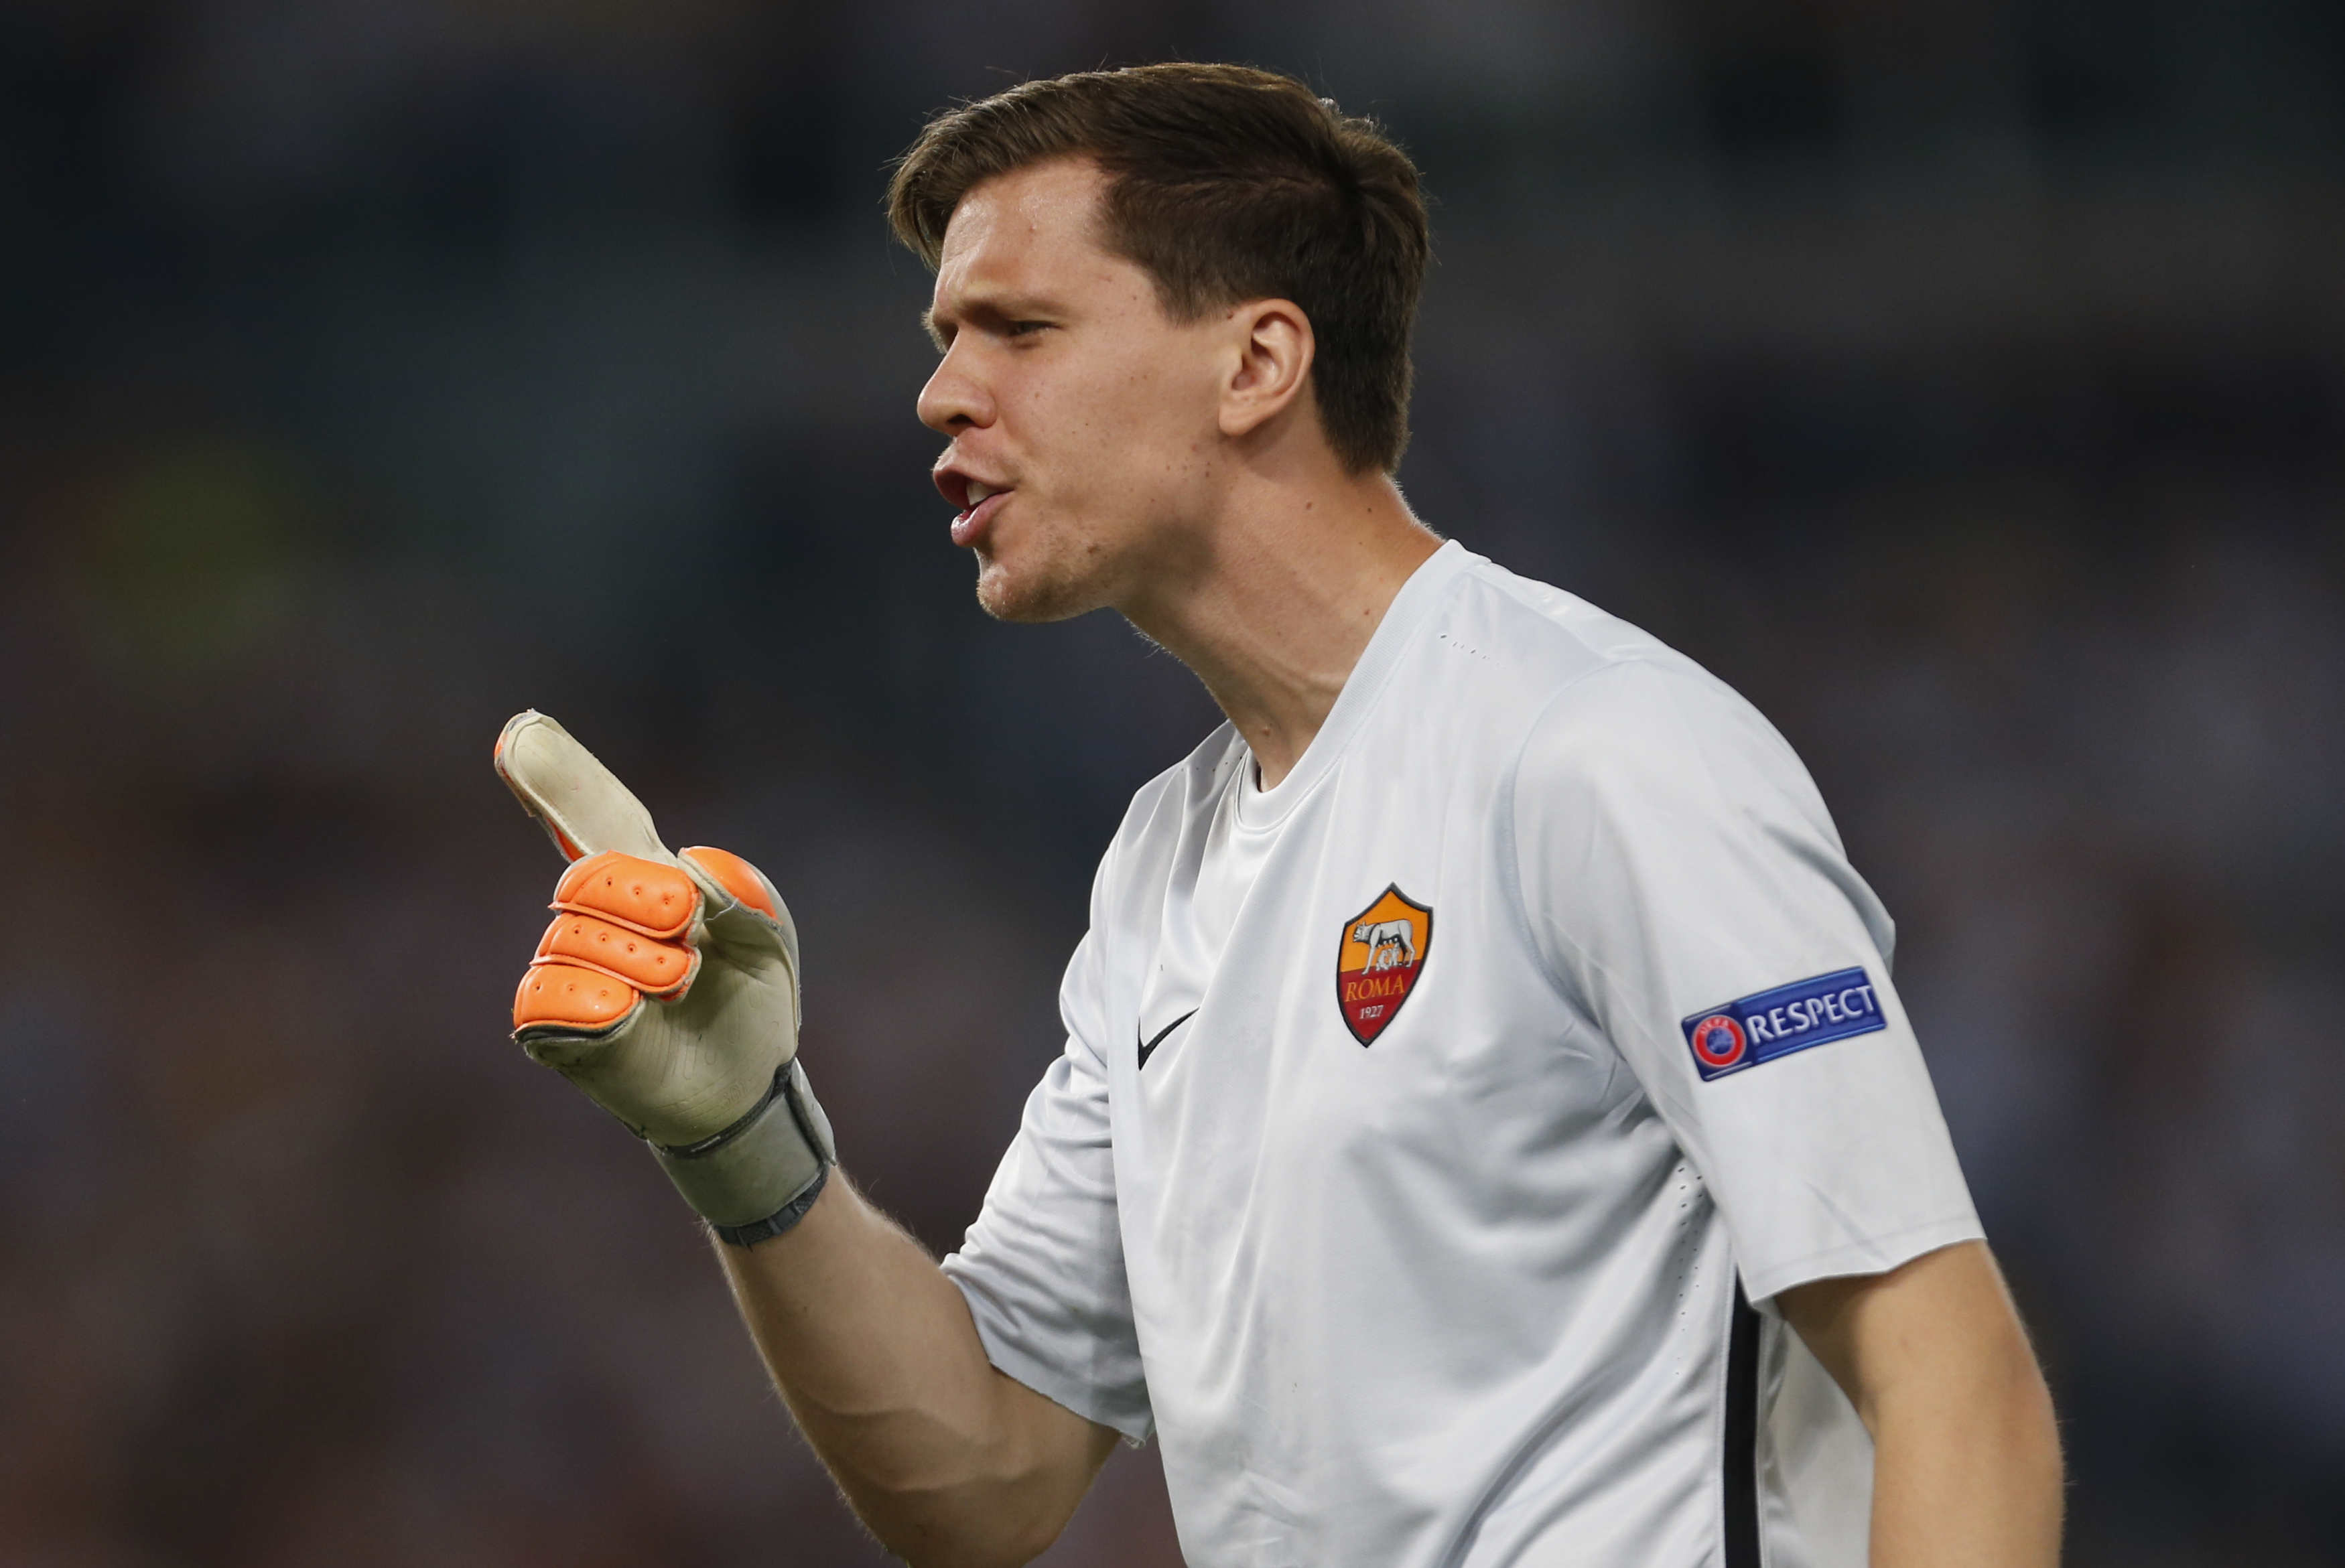 ROME, ITALY - 2015/09/16: AS Roma's Wojciech Szczesny reacts during the Champions League Group E soccer match against Barcellona at the Olympic Stadium. (Photo by Ciro De Luca/Pacific Press/LightRocket via Getty Images)